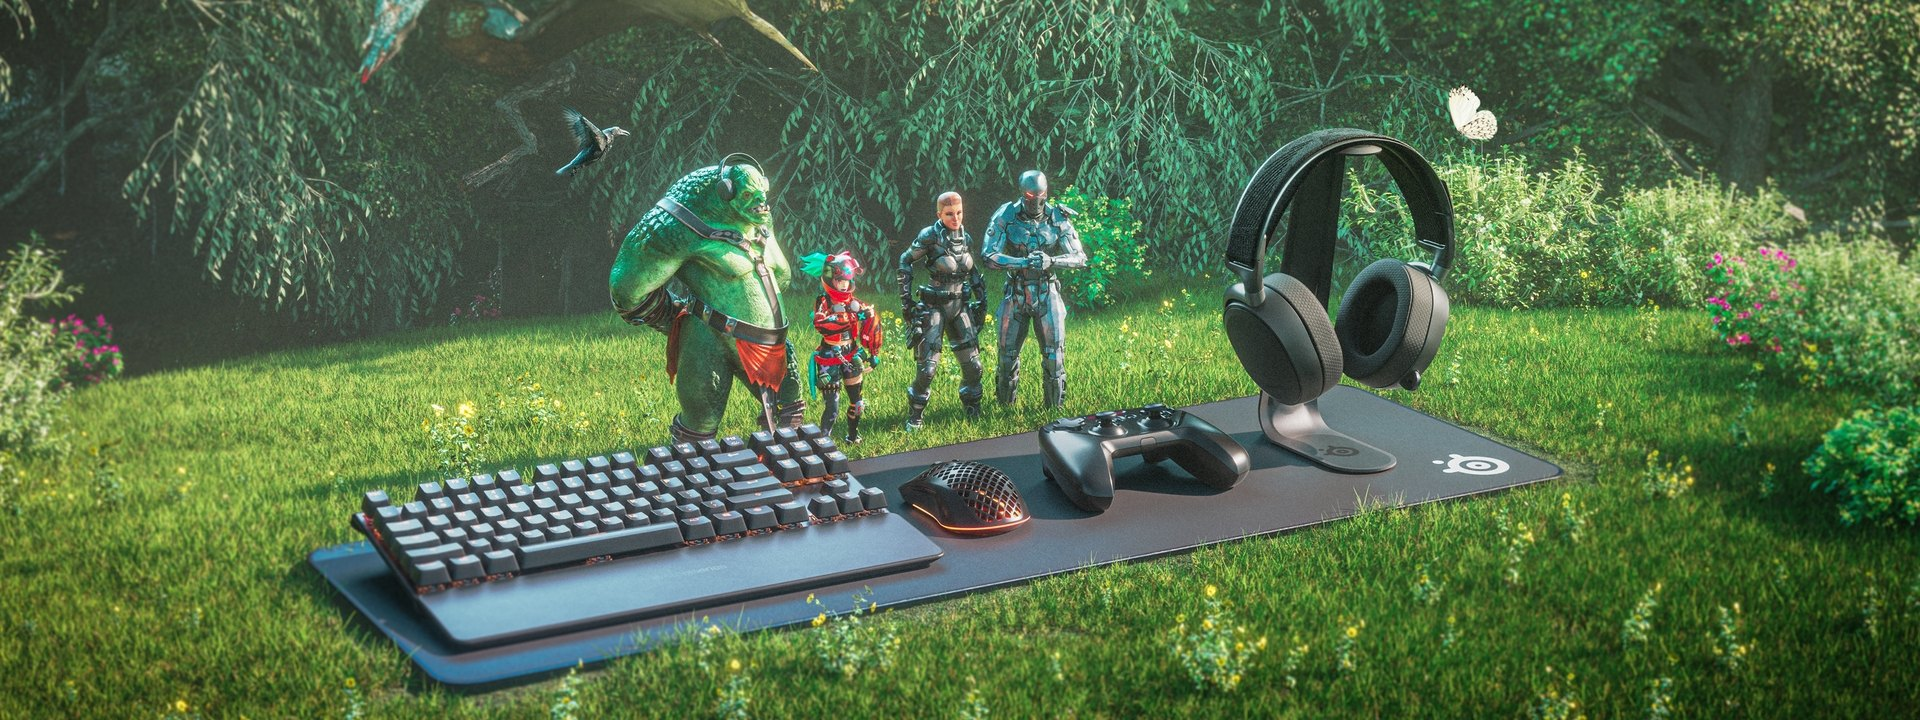 An illustrative render of a SteelSeries keyboard, mouse, controller, and headset sitting on a mousepad against a lush forest landscape alongside Lars the troll and other gaming characters.